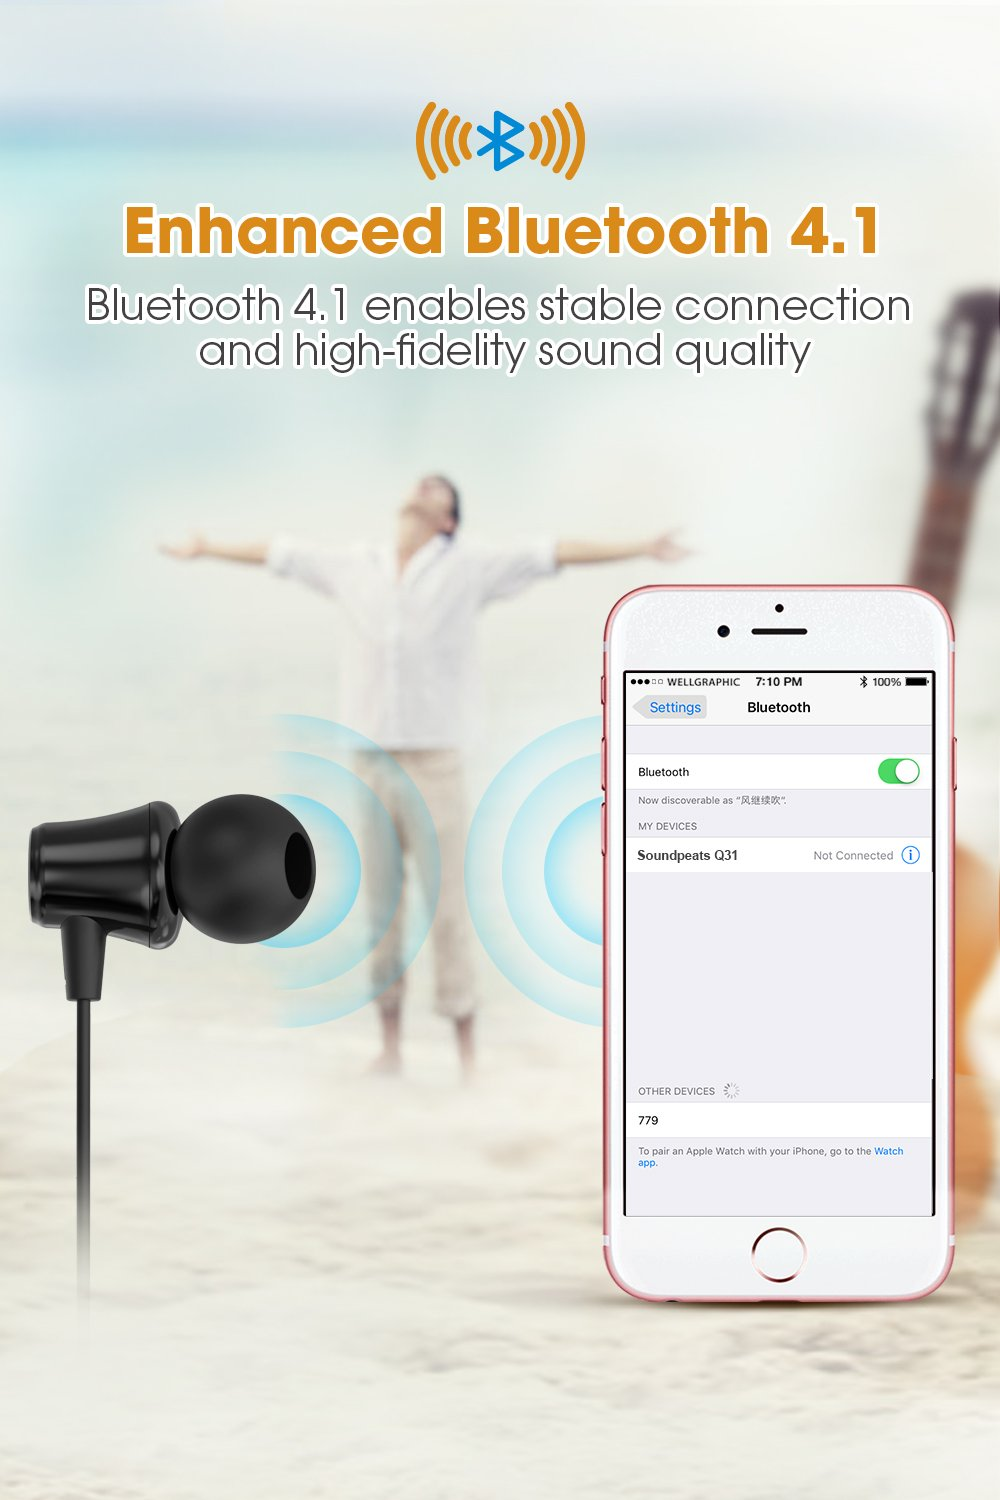 SoundPEATS-Bluetooth-Headphones-Wireless-Earbuds-41-Magnetic-Bluetooth-Earphones-Lightweight-Earbuds-with-Mic-for-in-Ear-Earphones-Sports8-Hours-Play-Time-Noise-Cancelling-Sweatproof